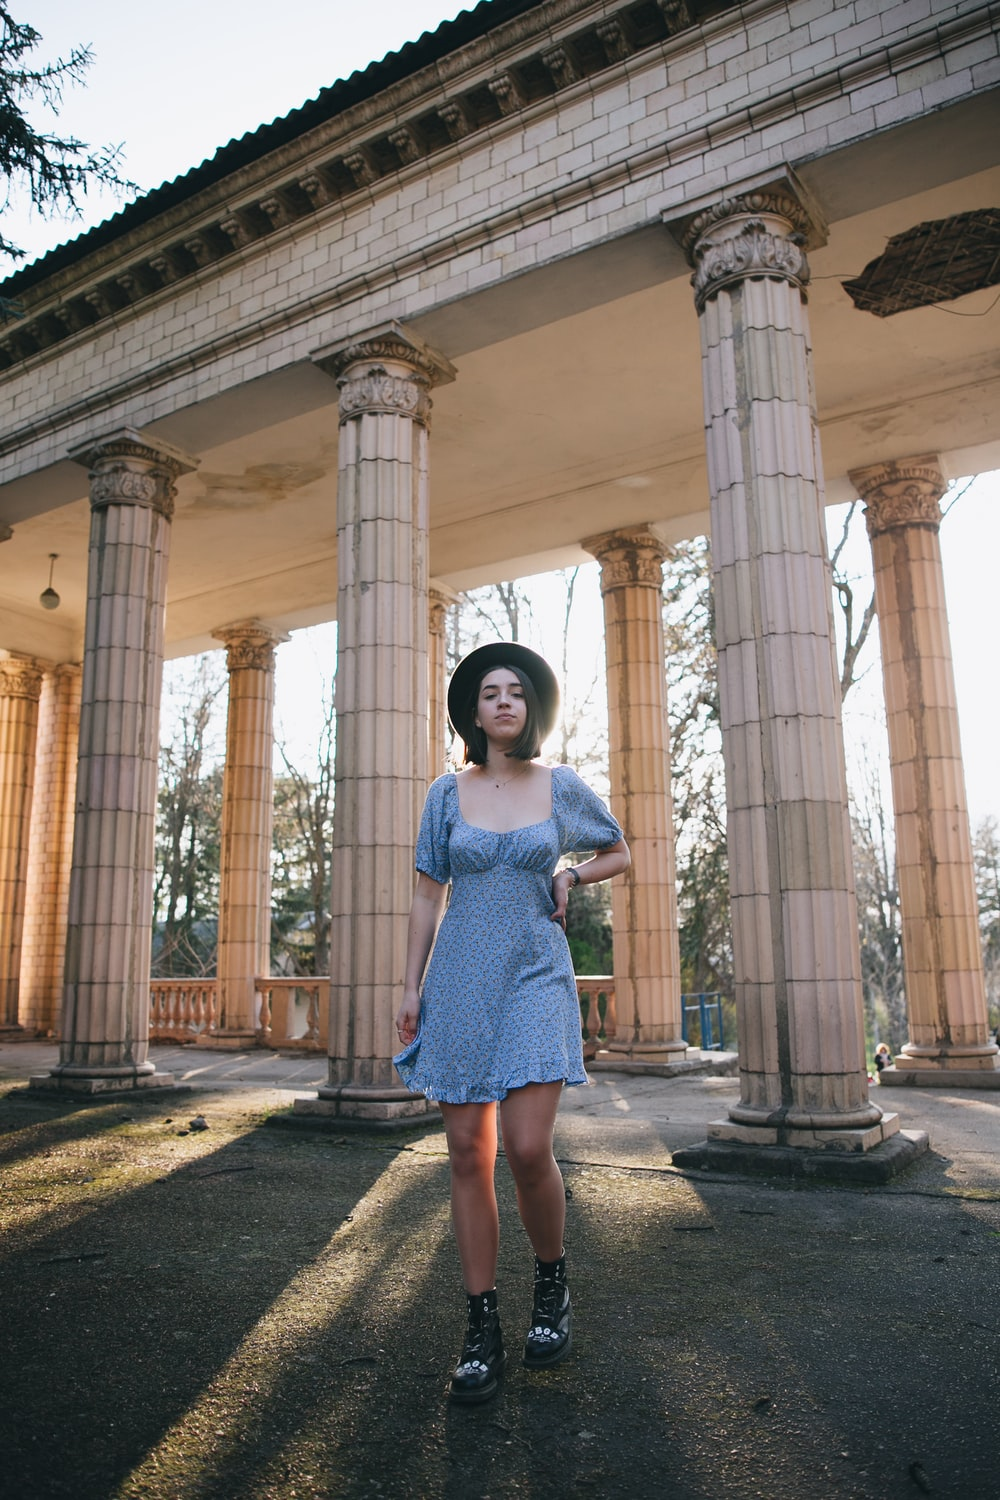 woman in blue dress standing in front of brown concrete pillar during daytime